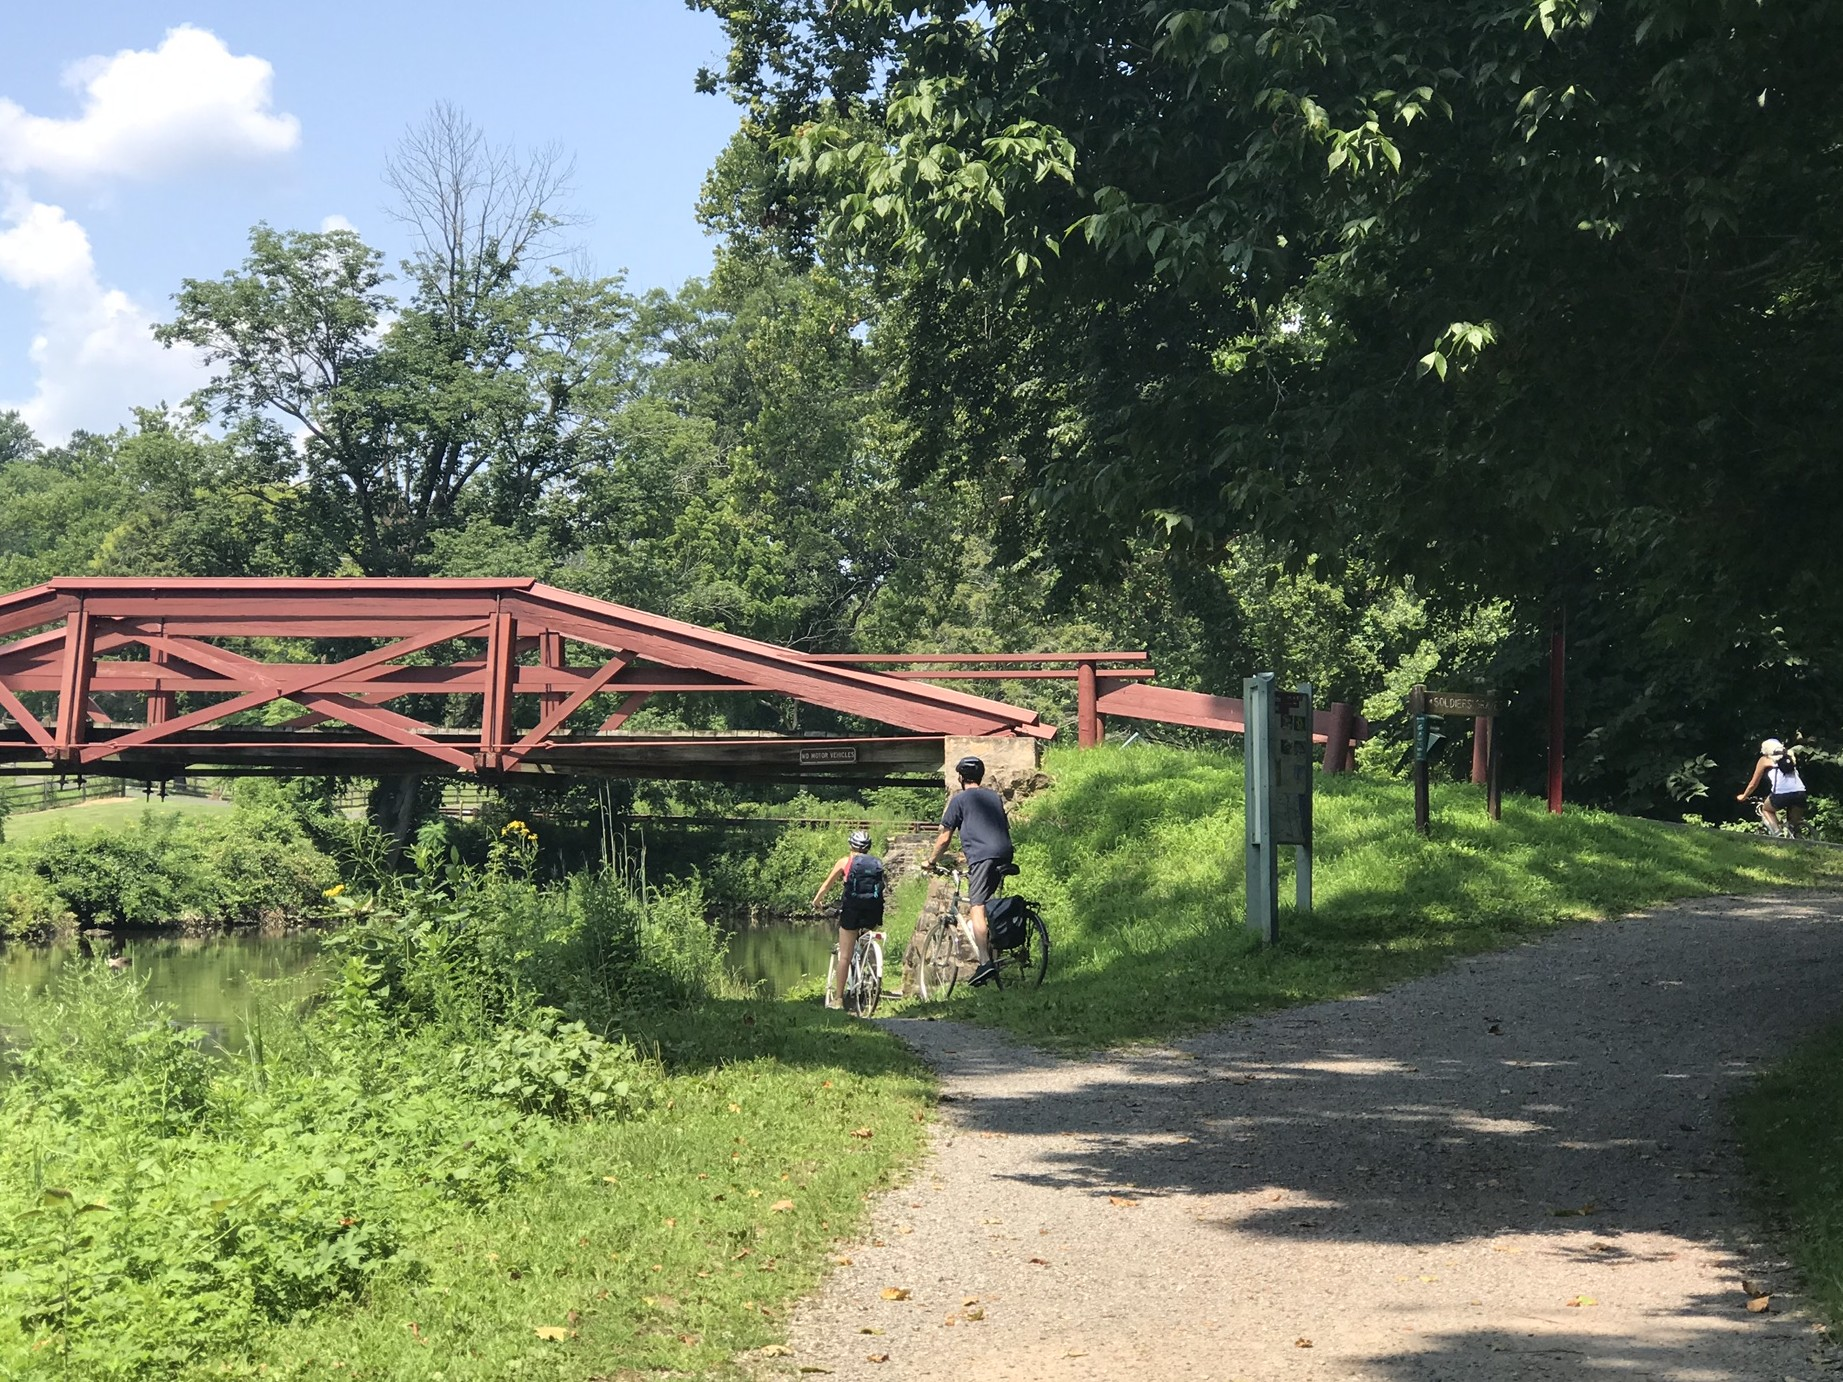 red bridge over canal and two people on bikes starting descent to path under bridge